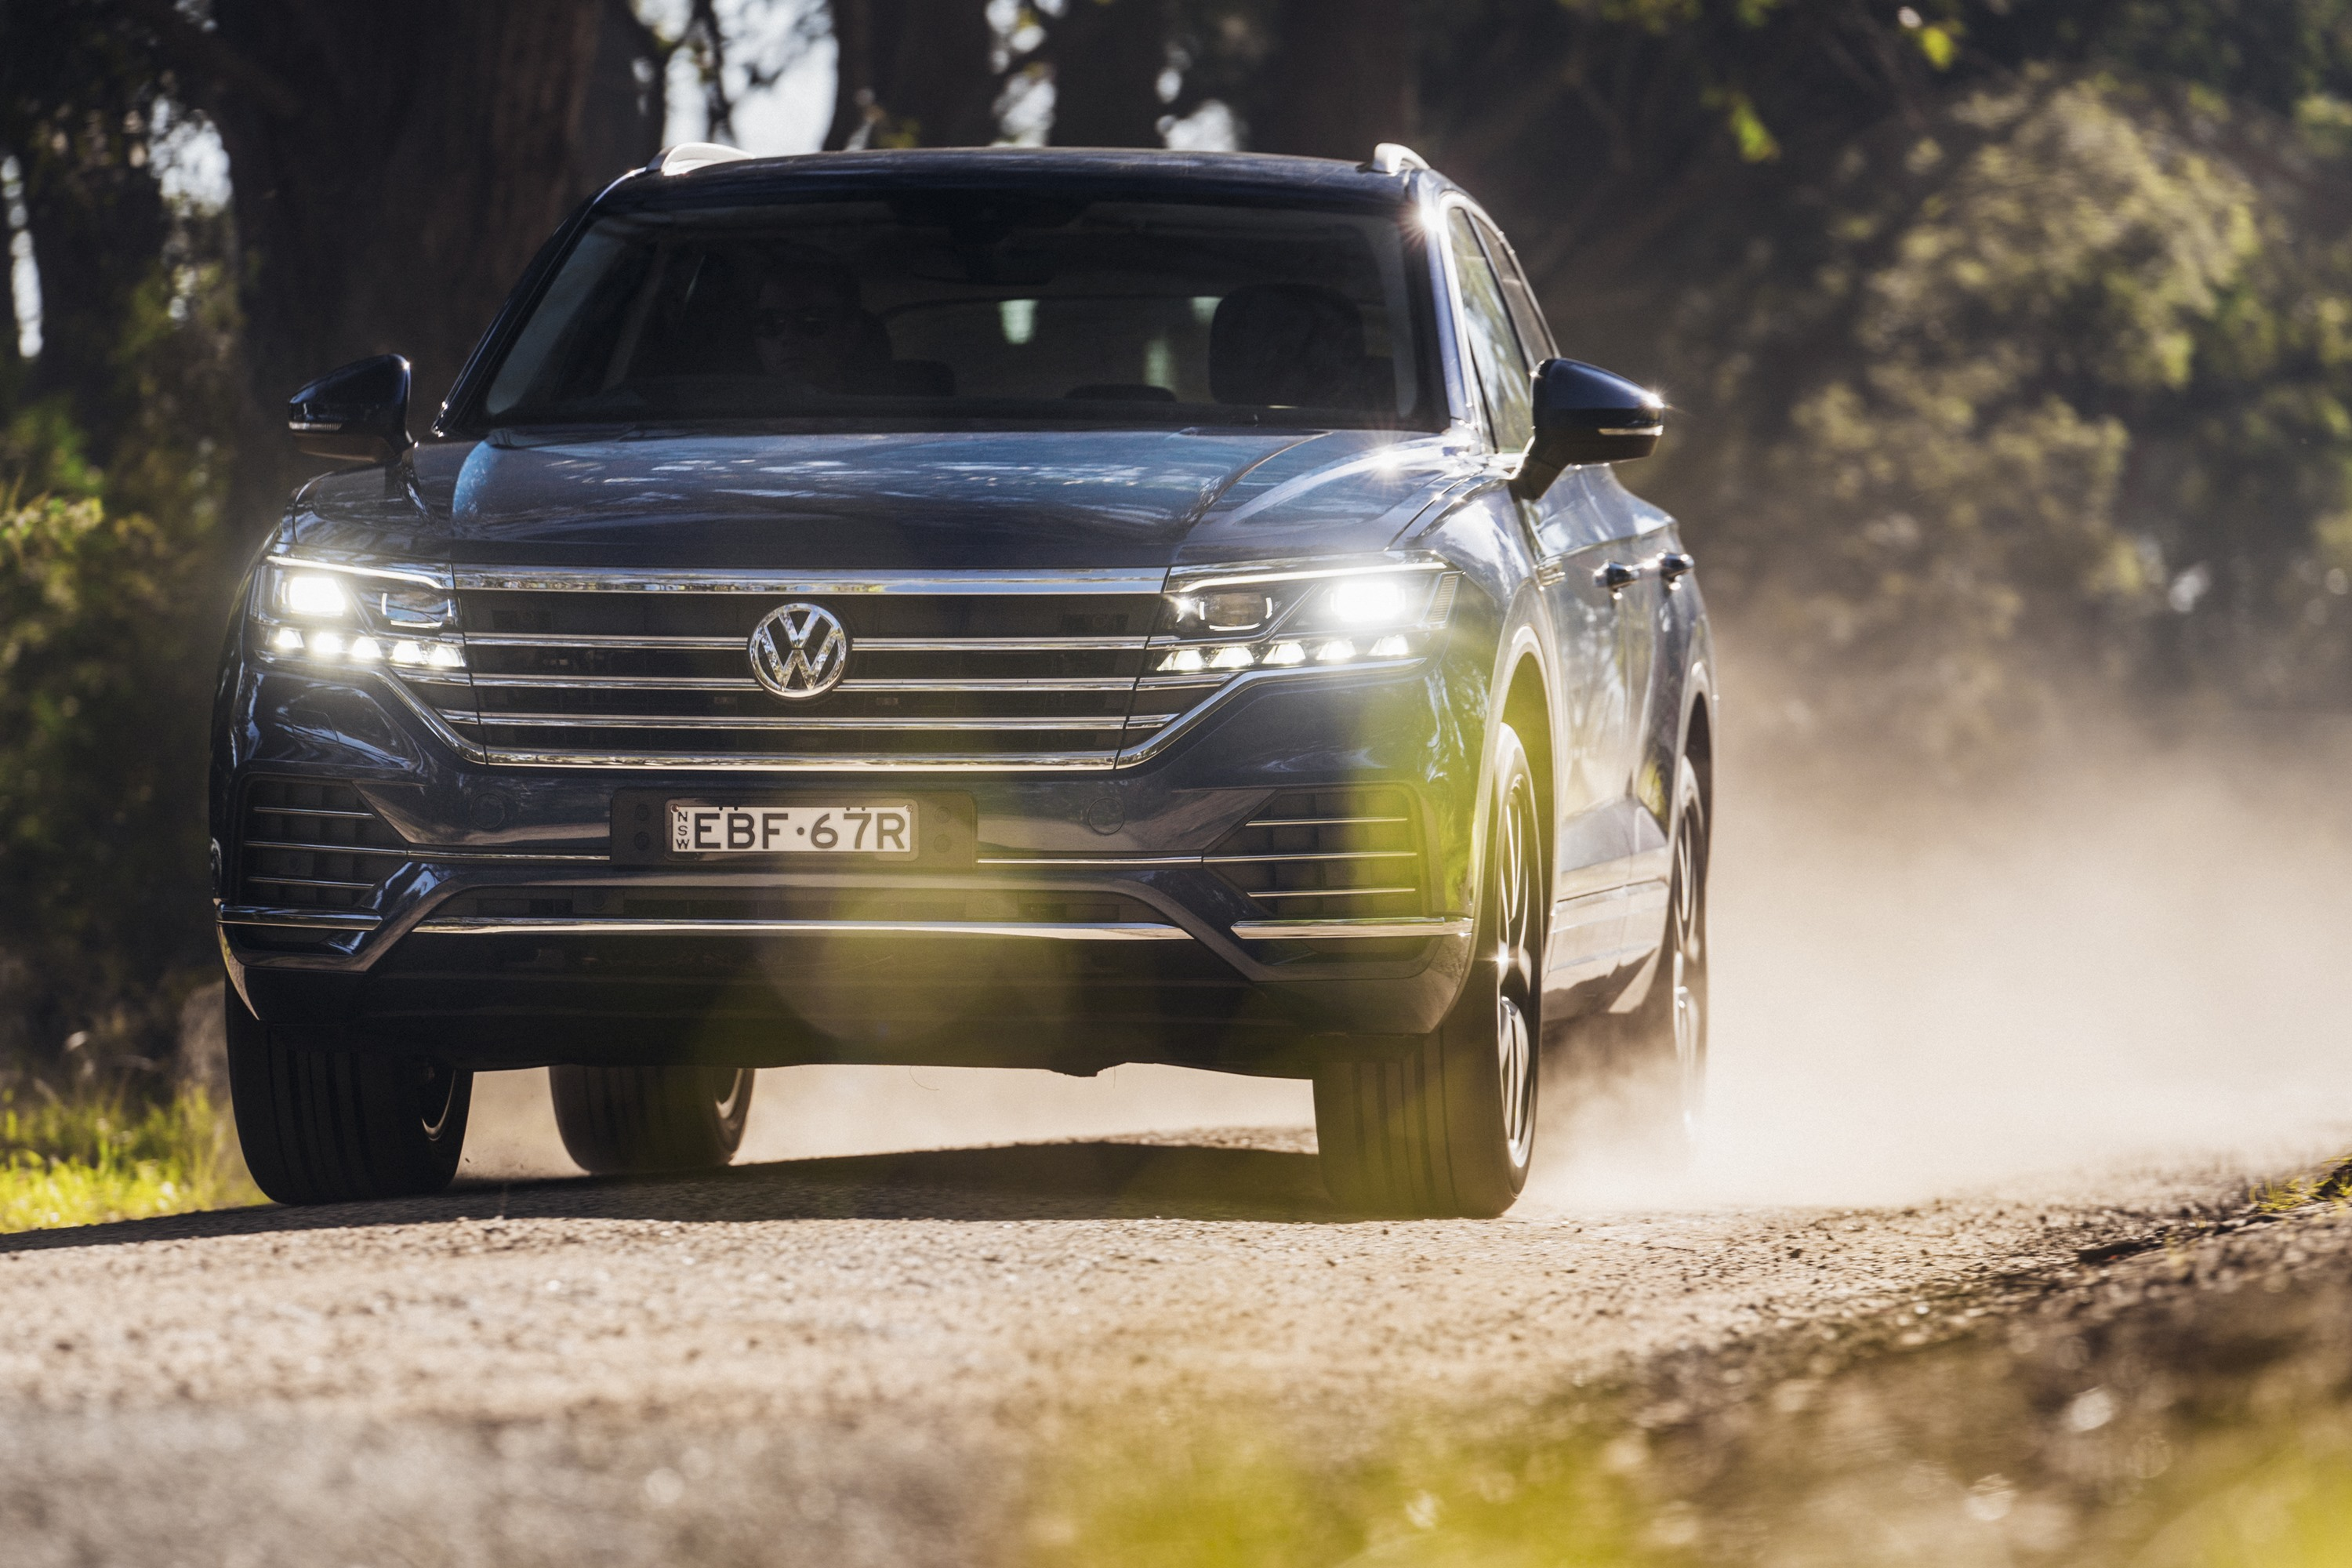 2019 VW Touareg Launch Edition 16 driving